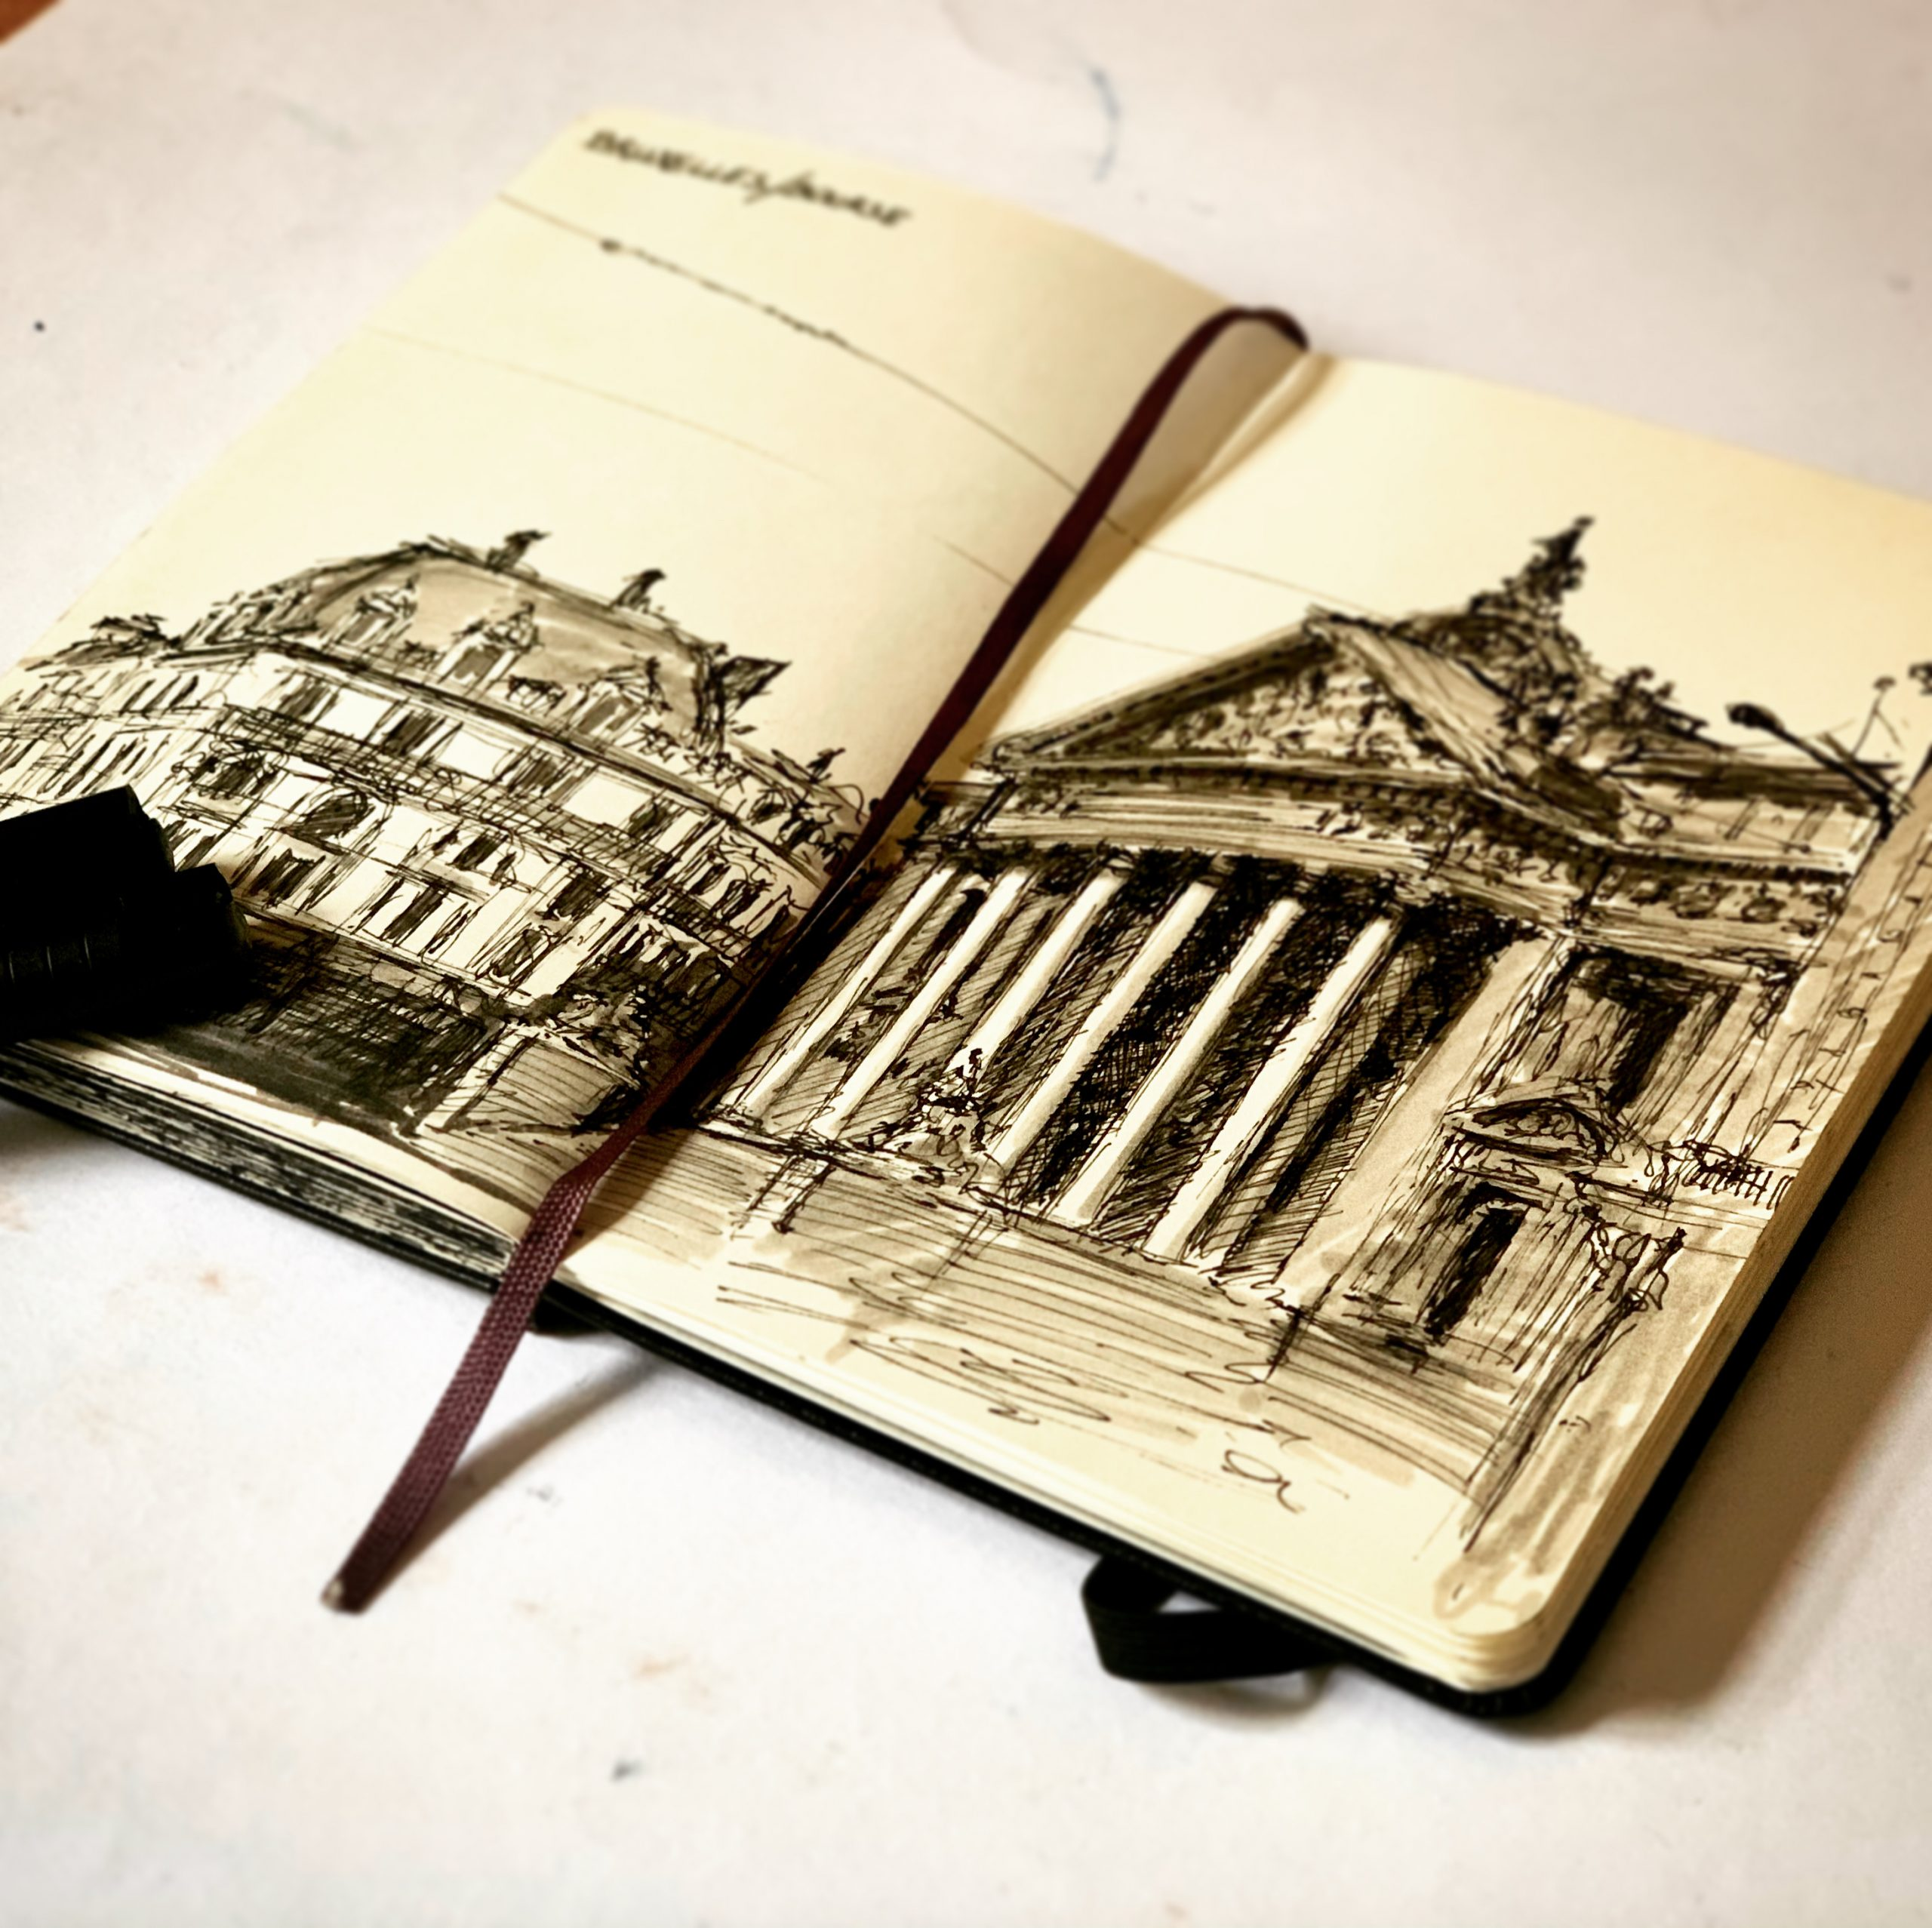 Sketching Brussels in my Moleskine sketchbook